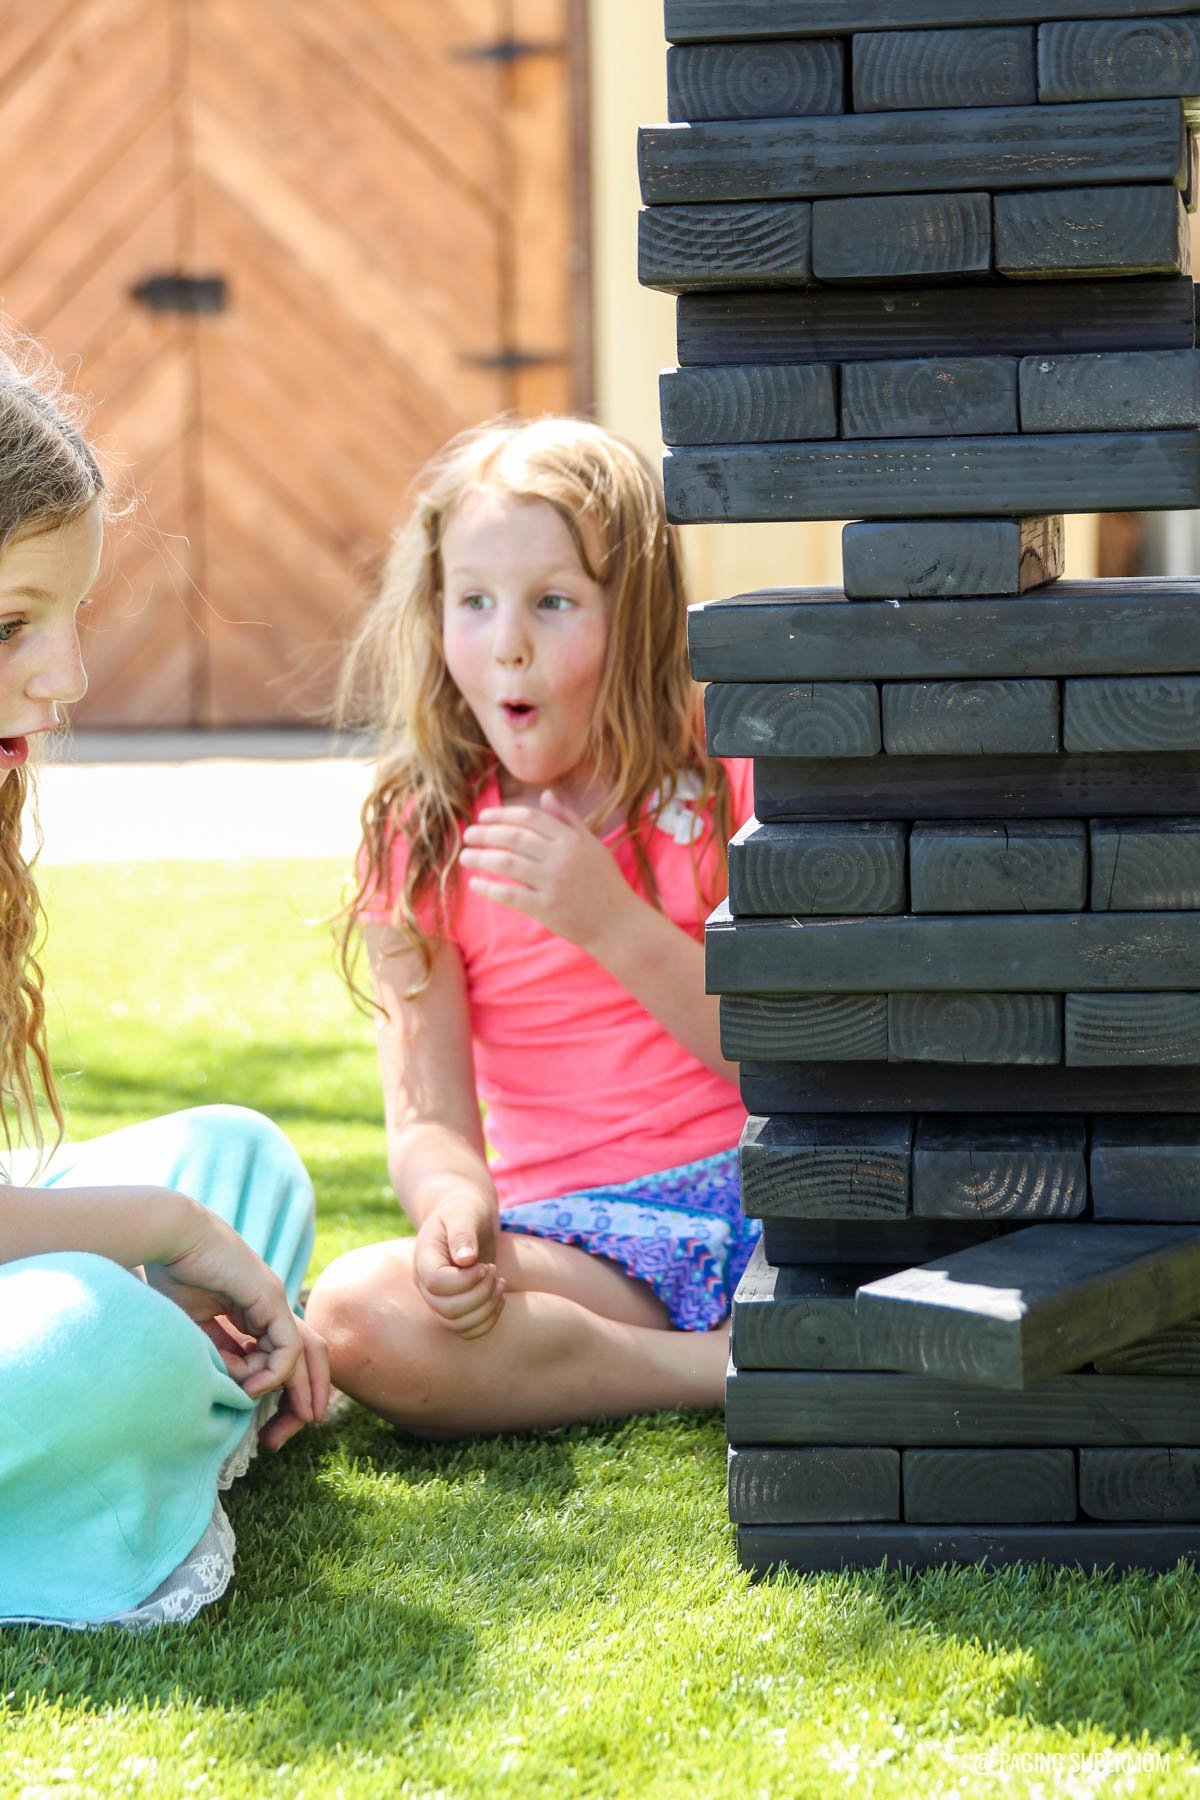 How to Make Jenga-inspired Stacking Blocks - DIY Backyard Games plans from @HomeDepot via @PagingSupermom